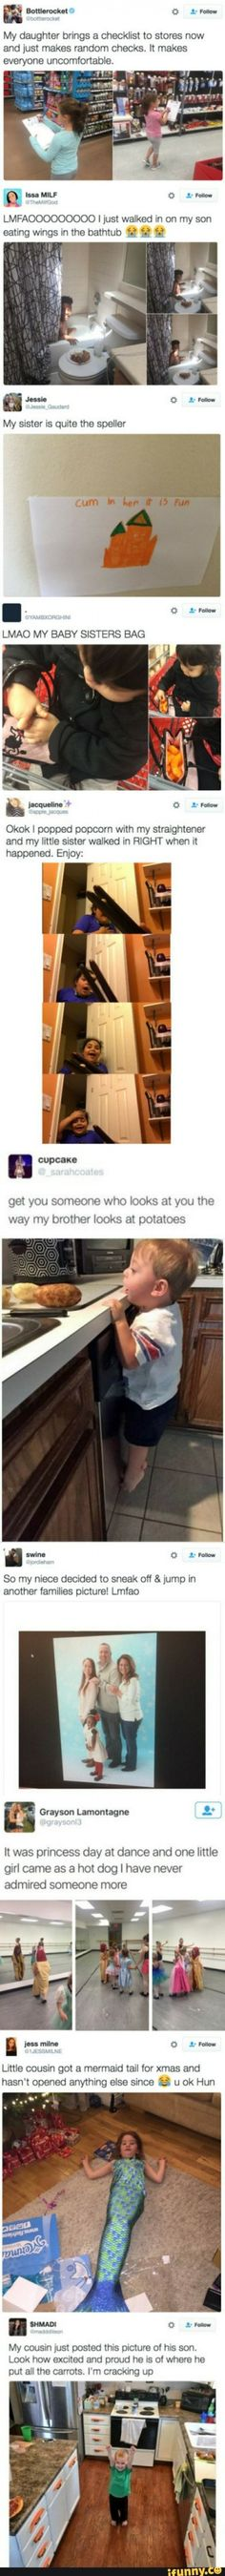 10 Funny Memes Of The Day